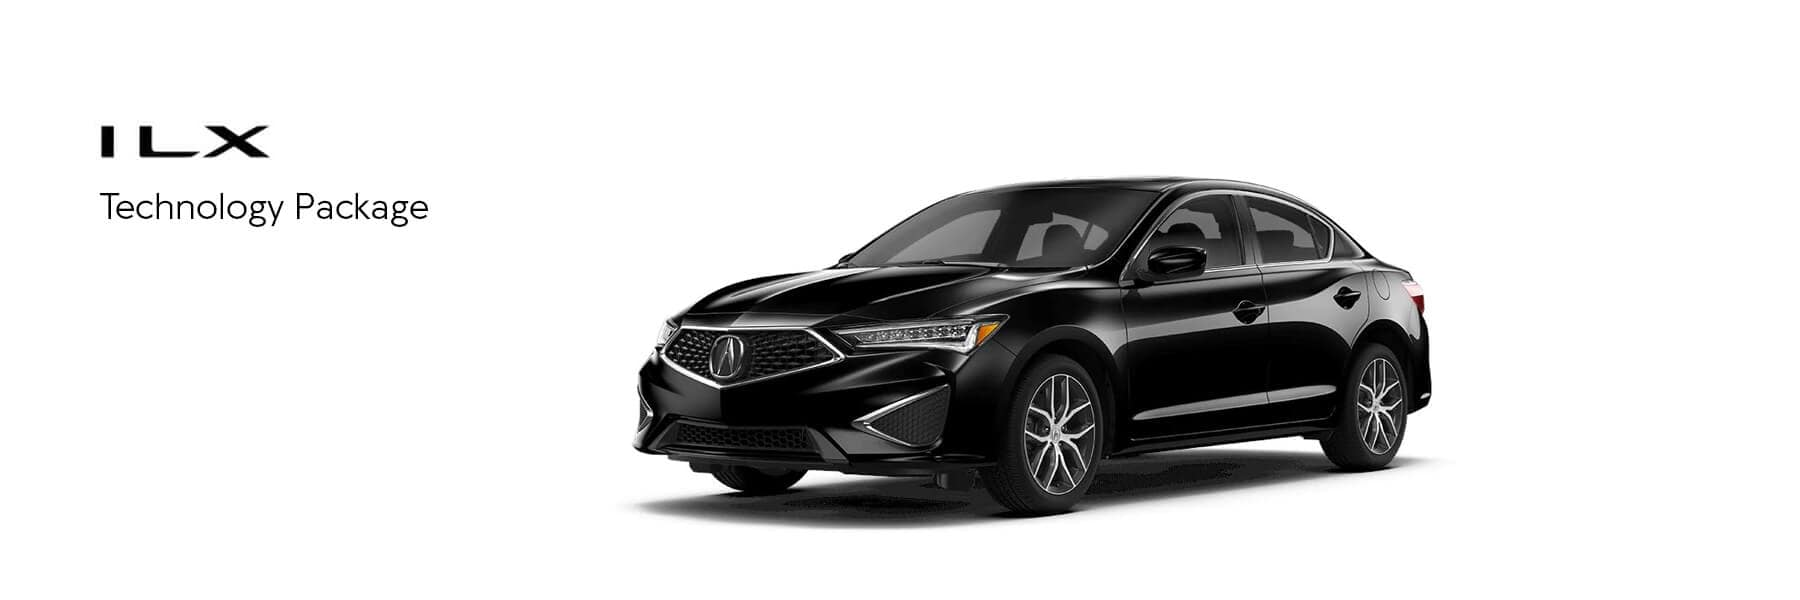 Acura ILX Technology Package Slider